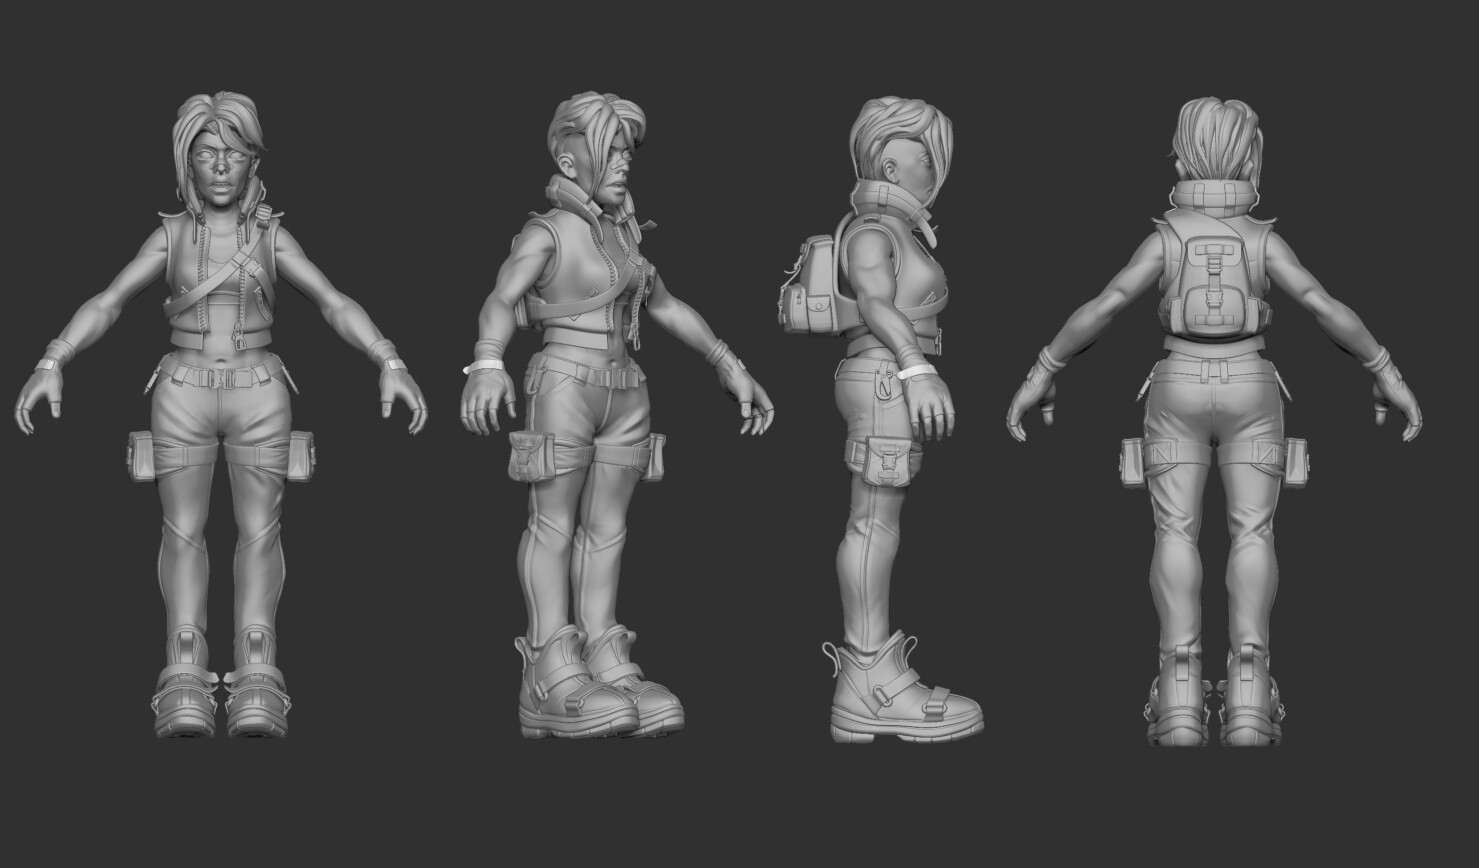 High Poly Blender and ZBrush sculpt including clothing (eventually didn't include the pouches).